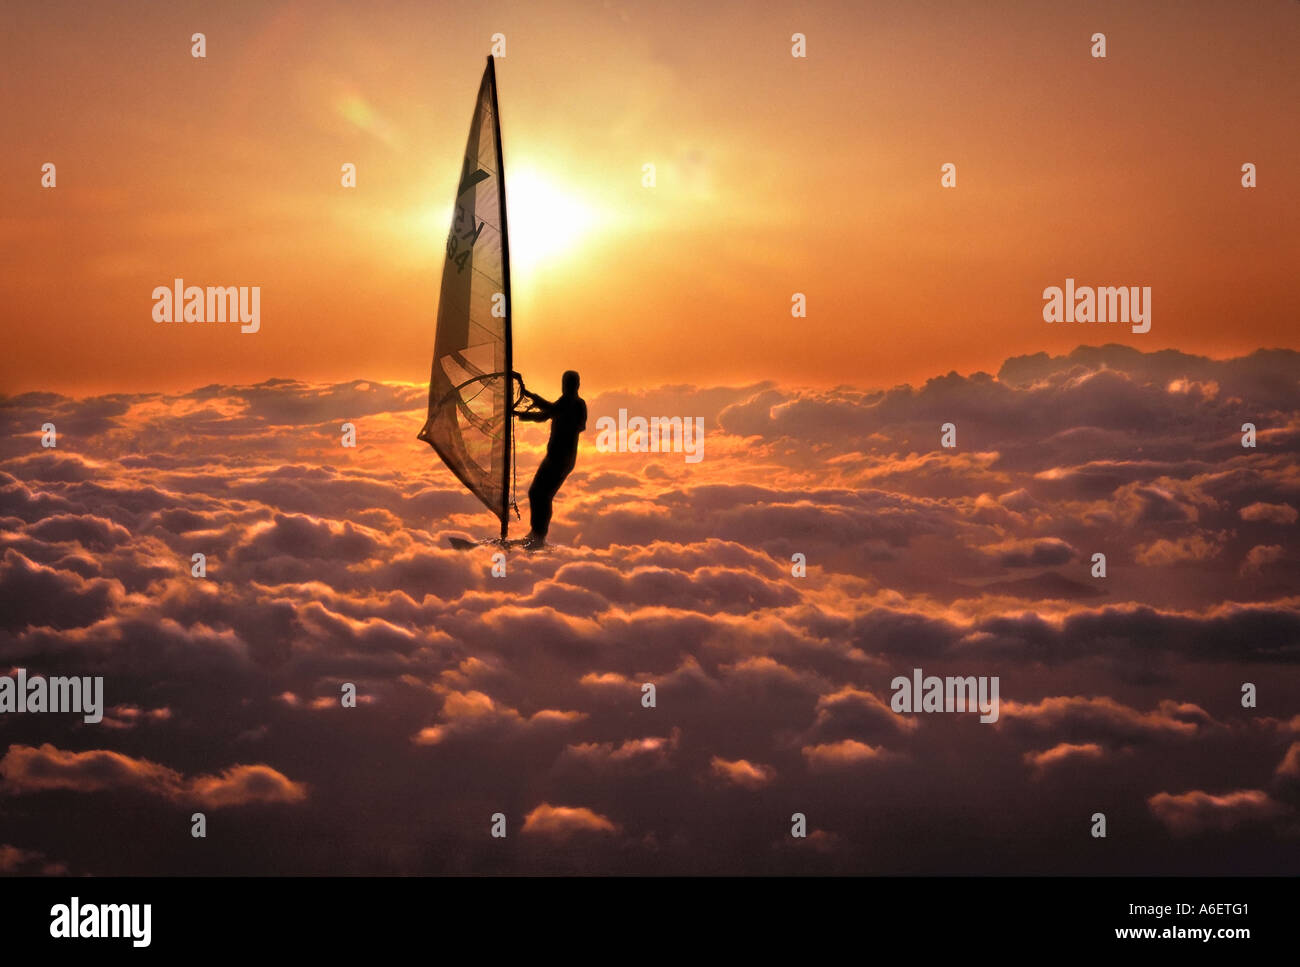 Digital Composite Of Windsurfer Surfing The Clouds At Sunset